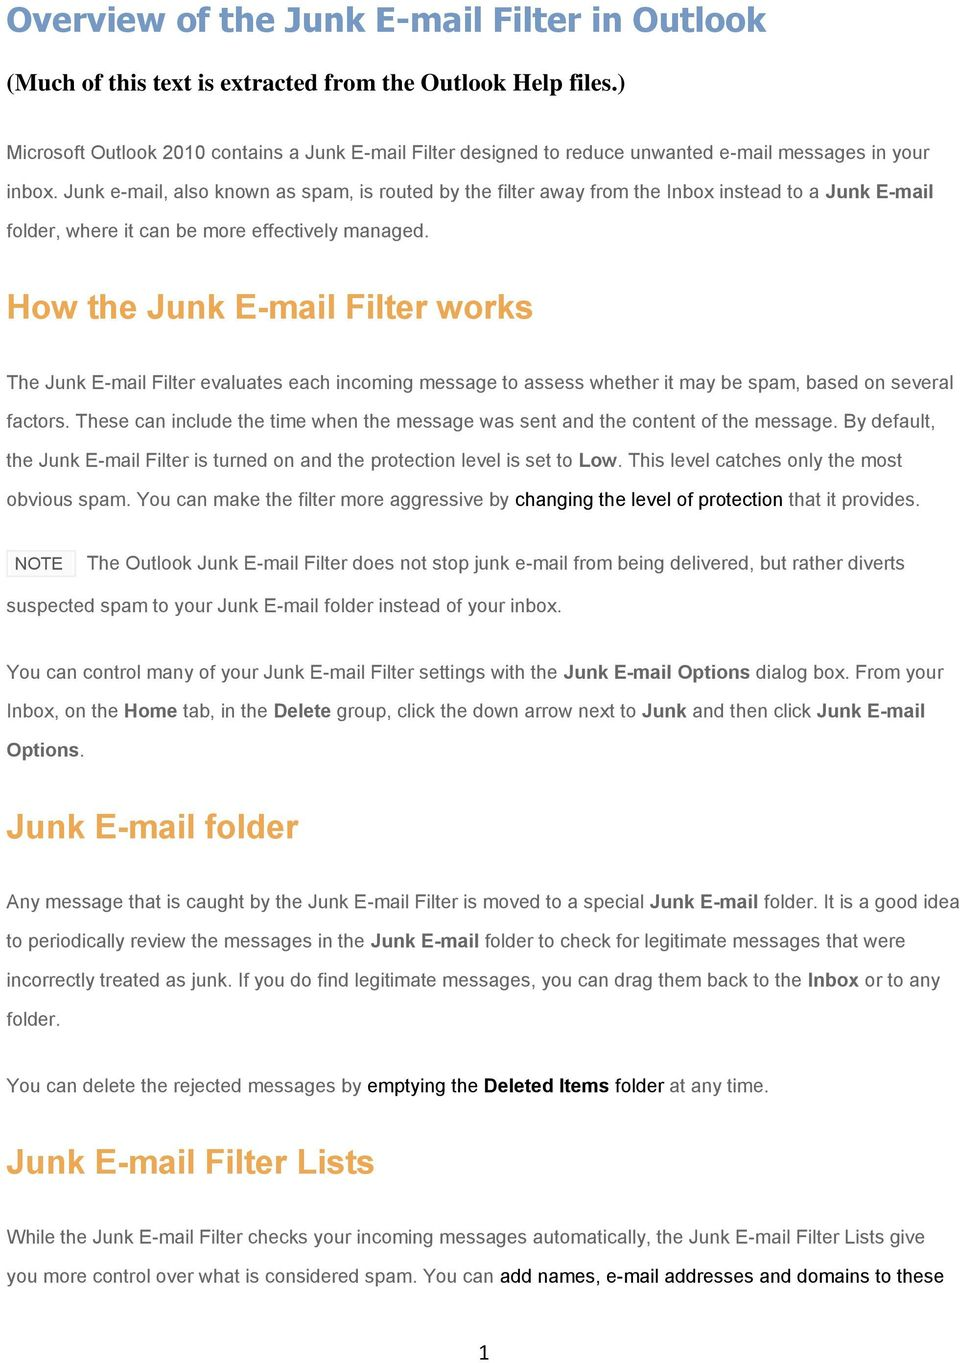 Junk e-mail, also known as spam, is routed by the filter away from the Inbox instead to a Junk E-mail folder, where it can be more effectively managed.